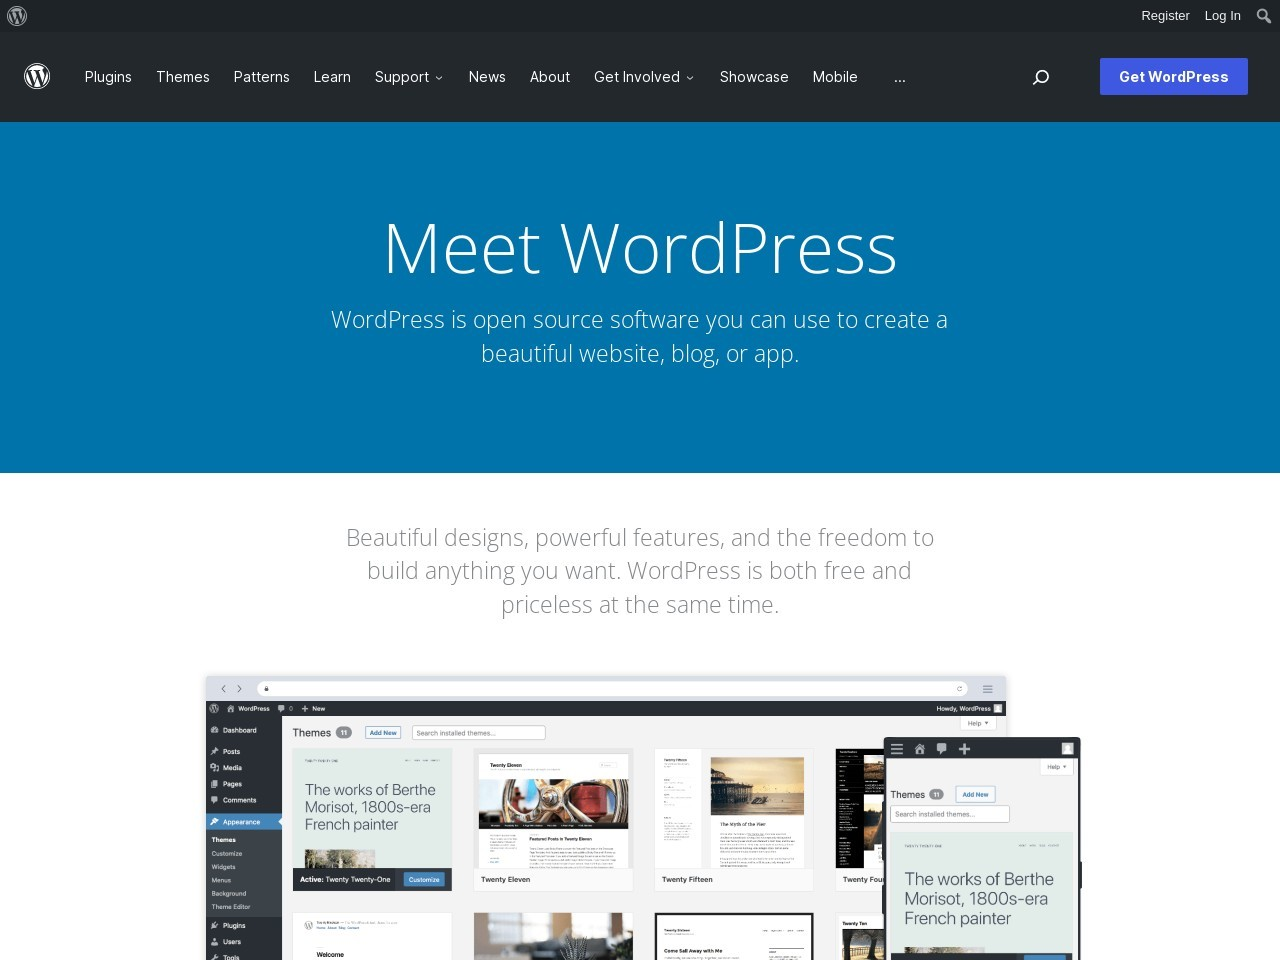 http://wordpress.org/extend/themes/Simple%20Catch